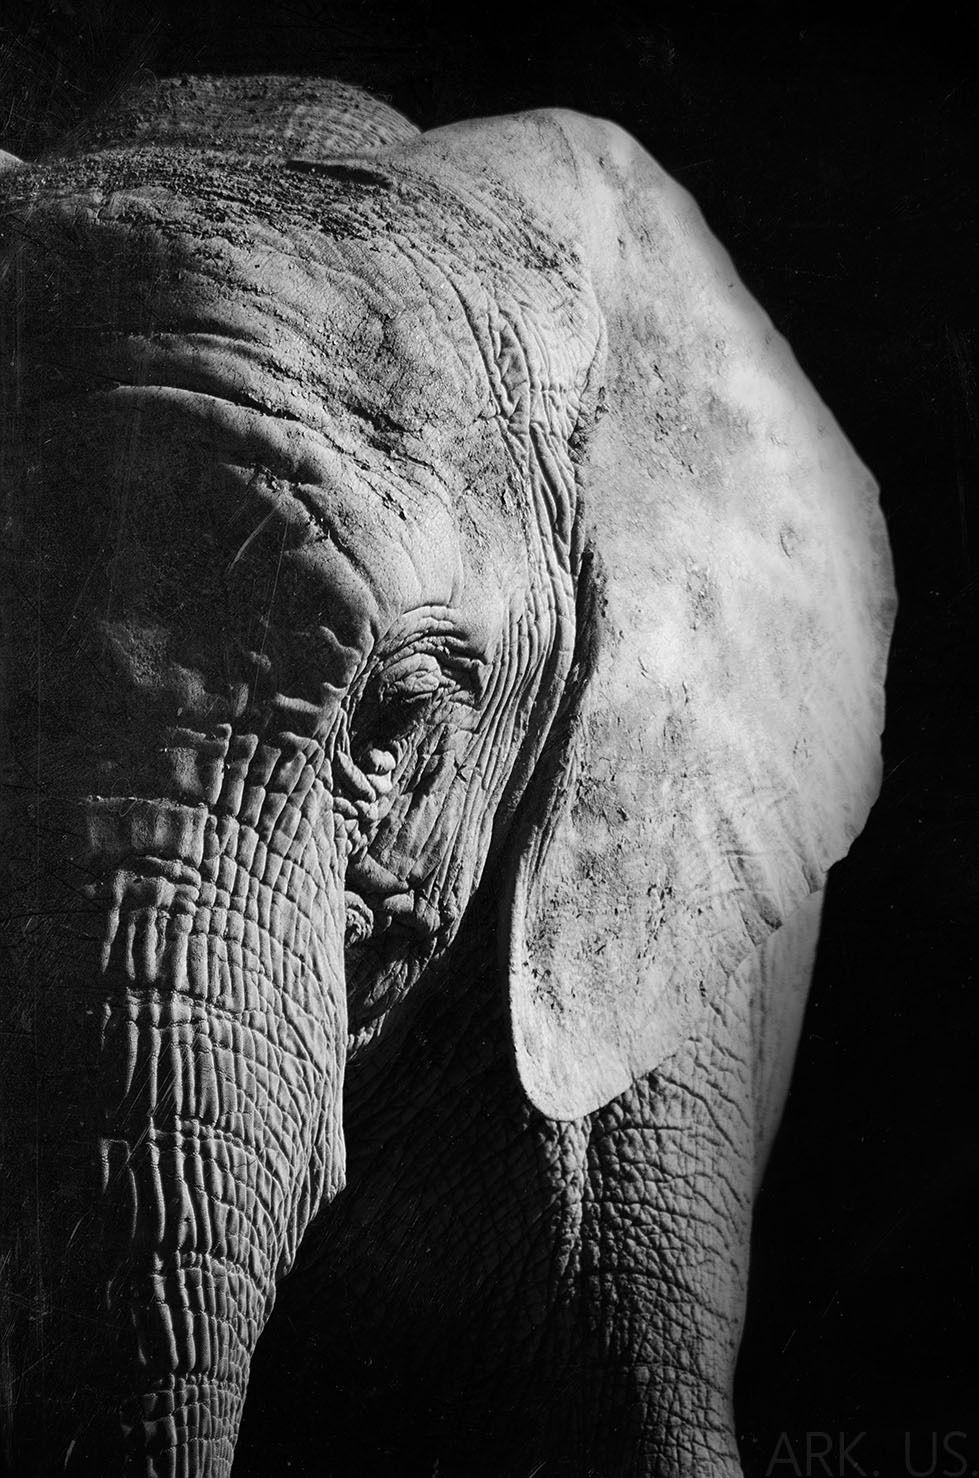 poster portrait d 39 l phant en noir et blanc 30x45cm fotos pinterest photo elephant photo. Black Bedroom Furniture Sets. Home Design Ideas